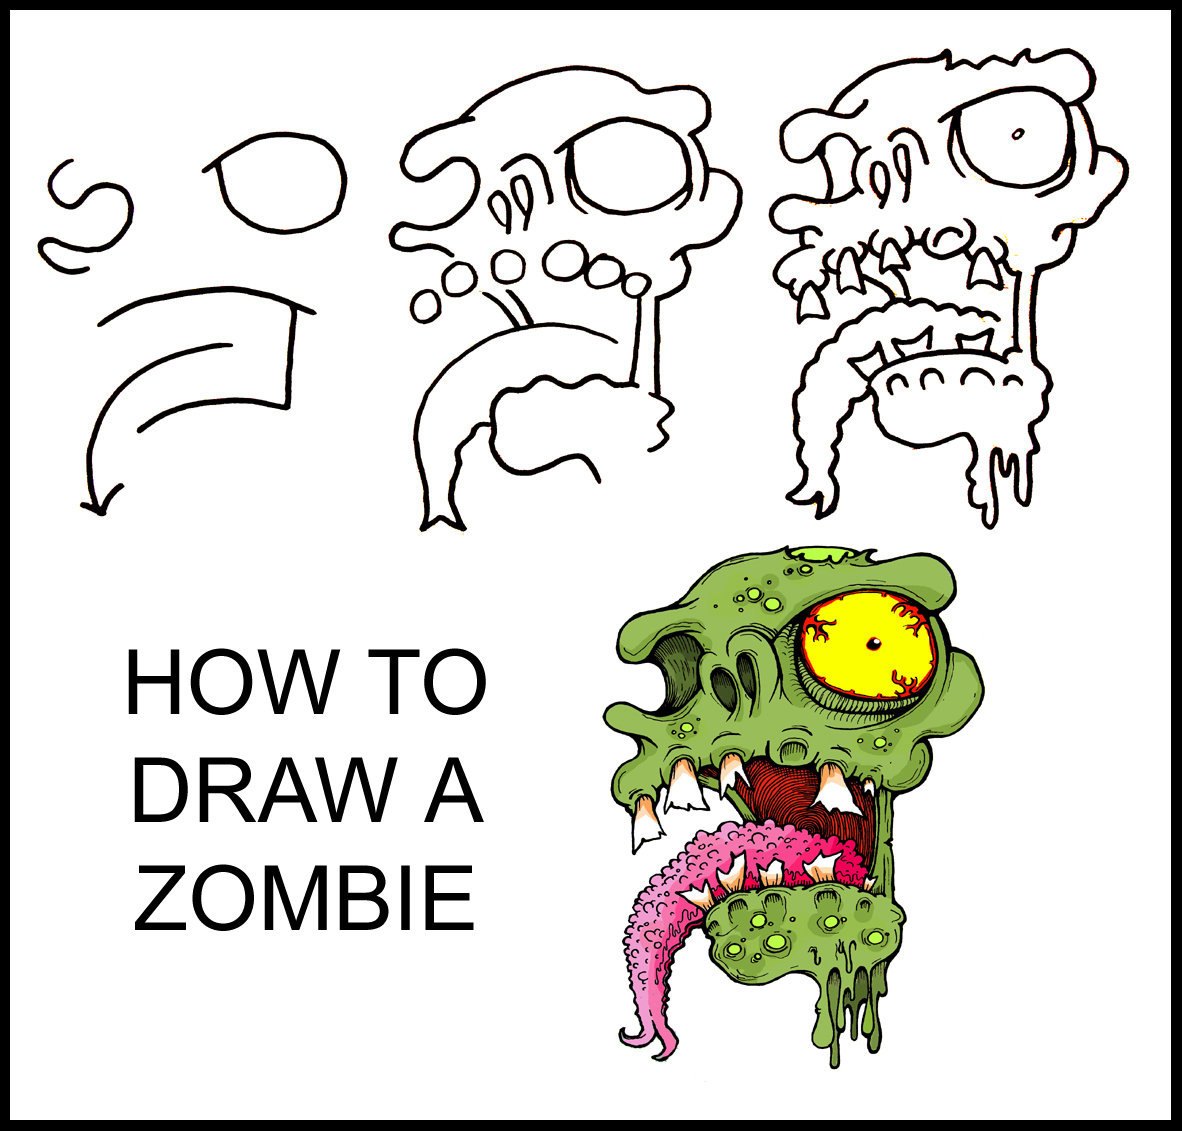 1182x1131 How To Draw A Zombie Step By Step Art Guide Daryl Hobson Artwork